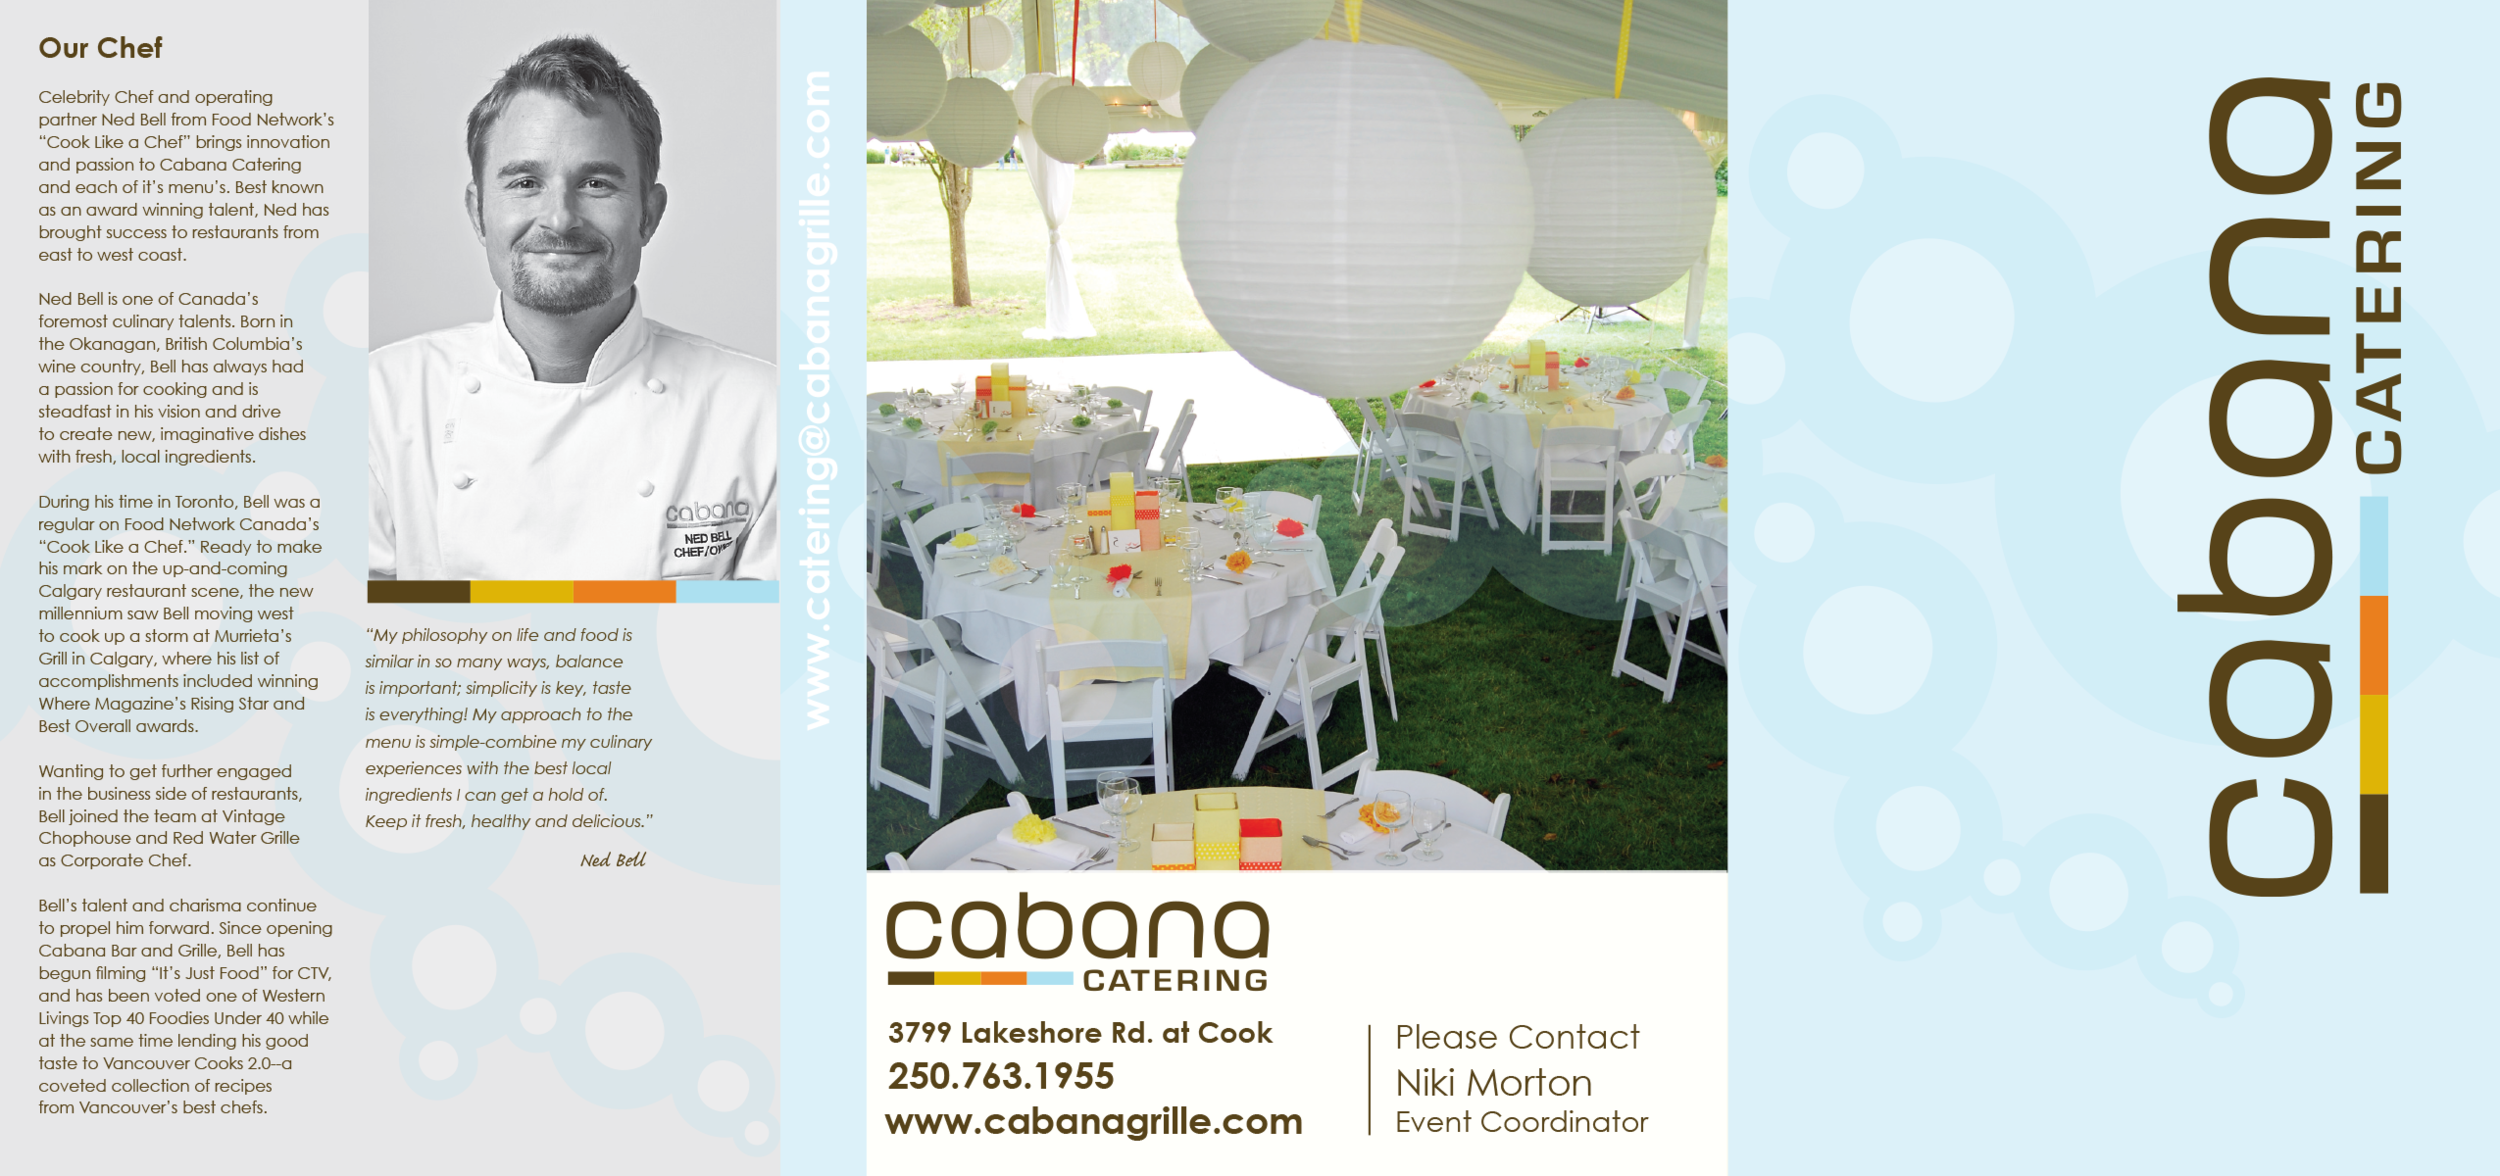 CABANA Catering Brochure.png